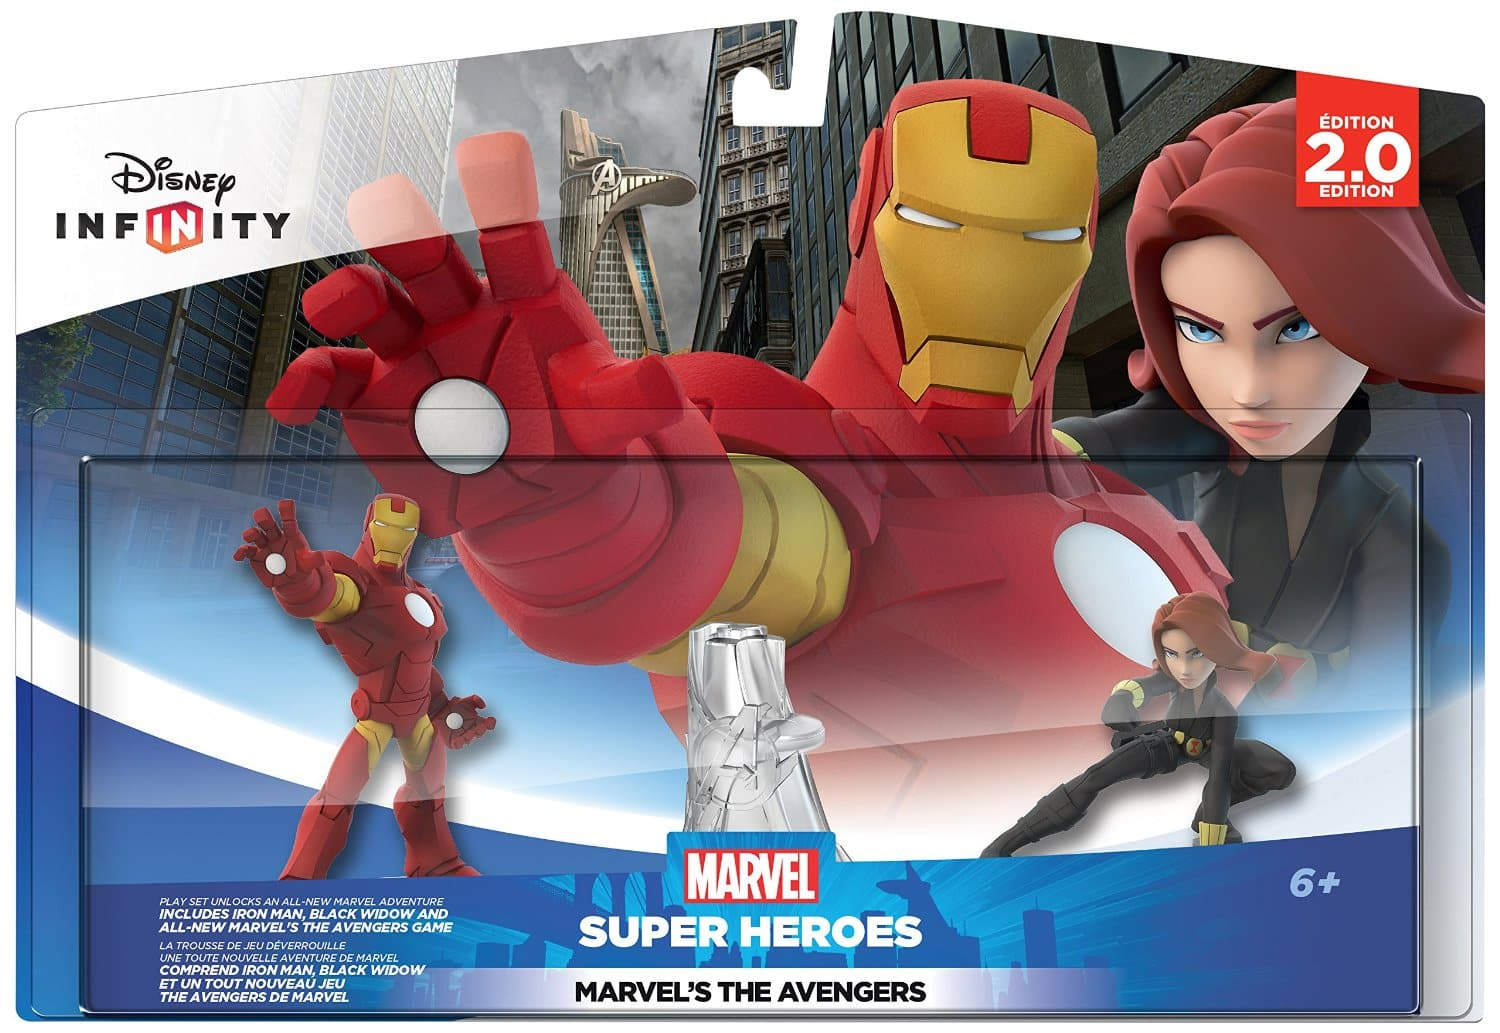 Disney Infinity: Select Marvel Super Heroes 2.0 Edition Sets  $17.50 & More + Free Store Pickup